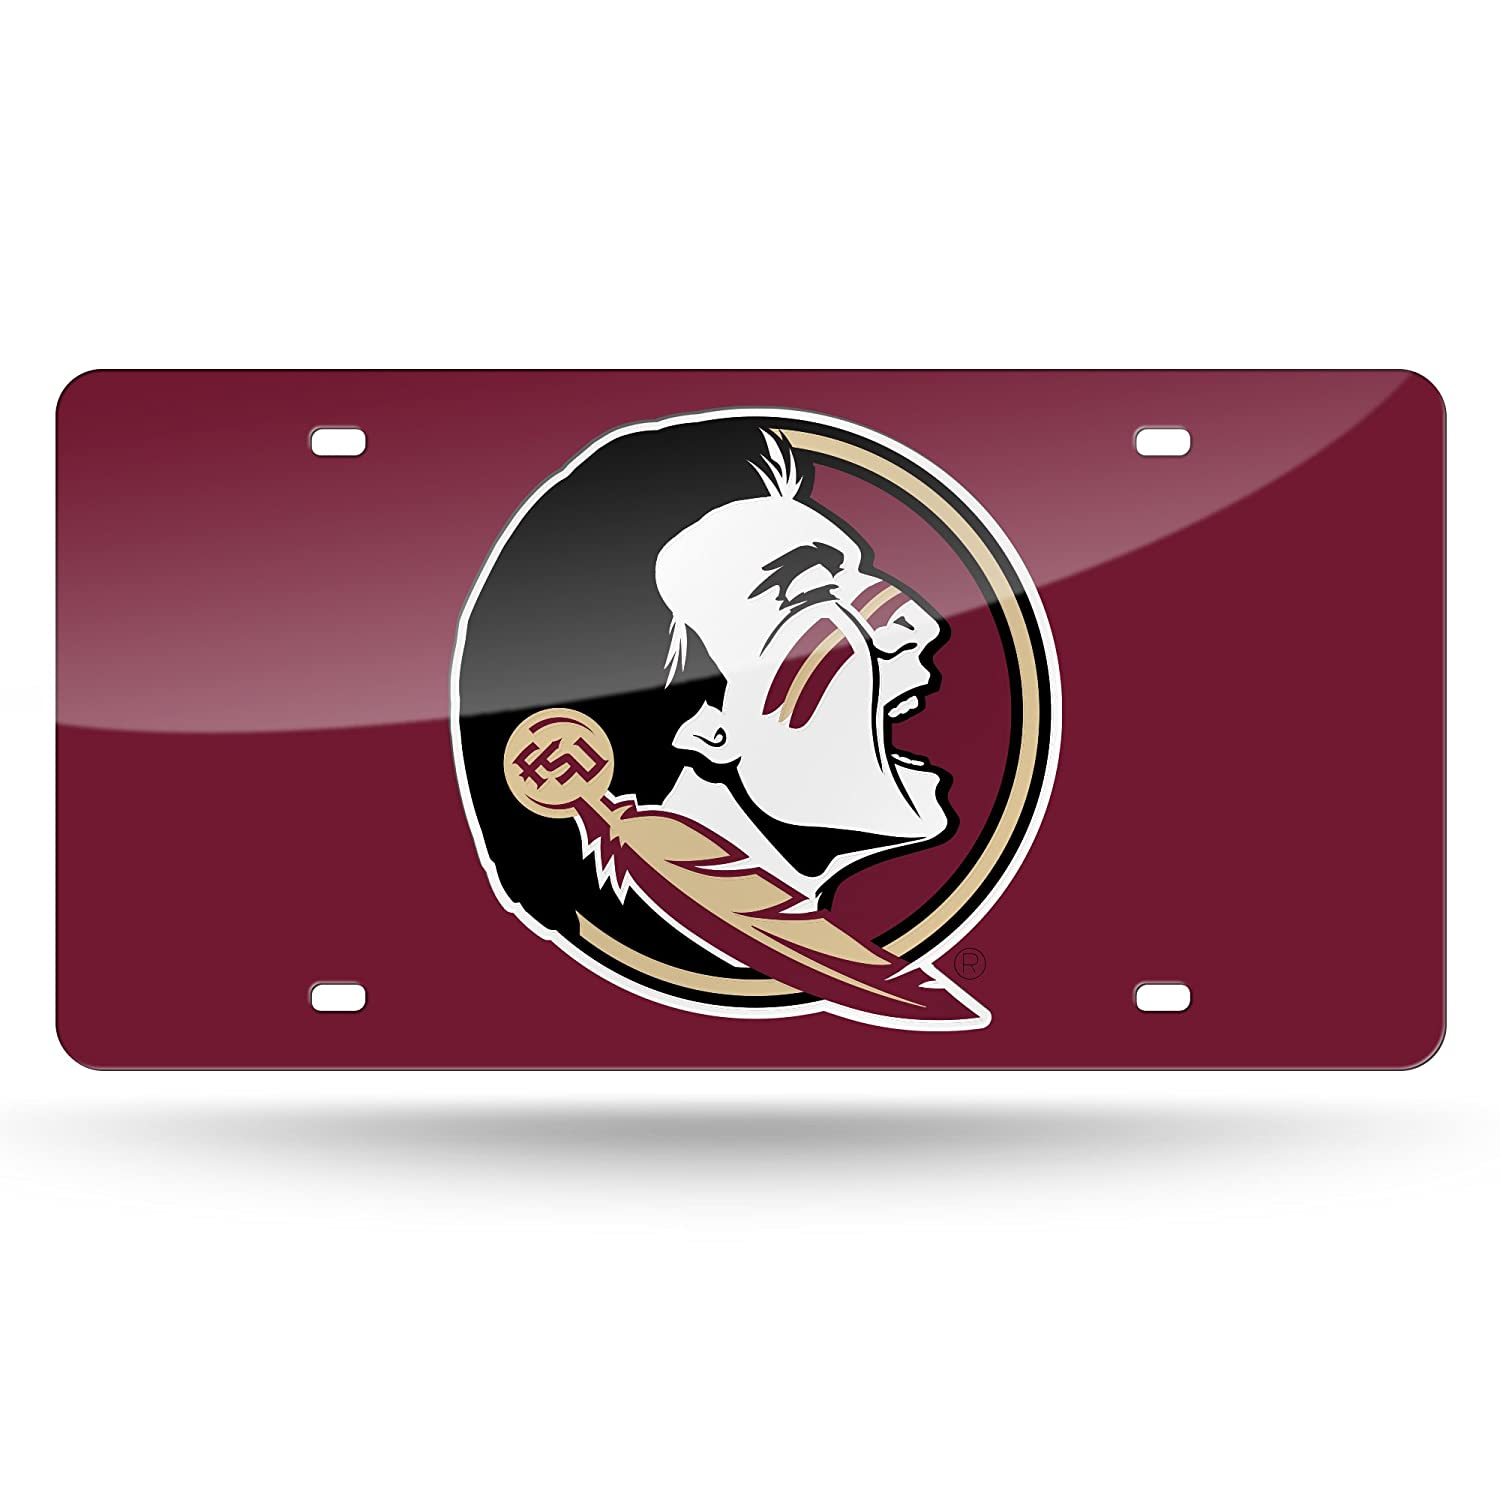 6 x 12 Red Rico Industries NCAA Florida State Seminoles Laser Inlaid Metal License Plate Tag